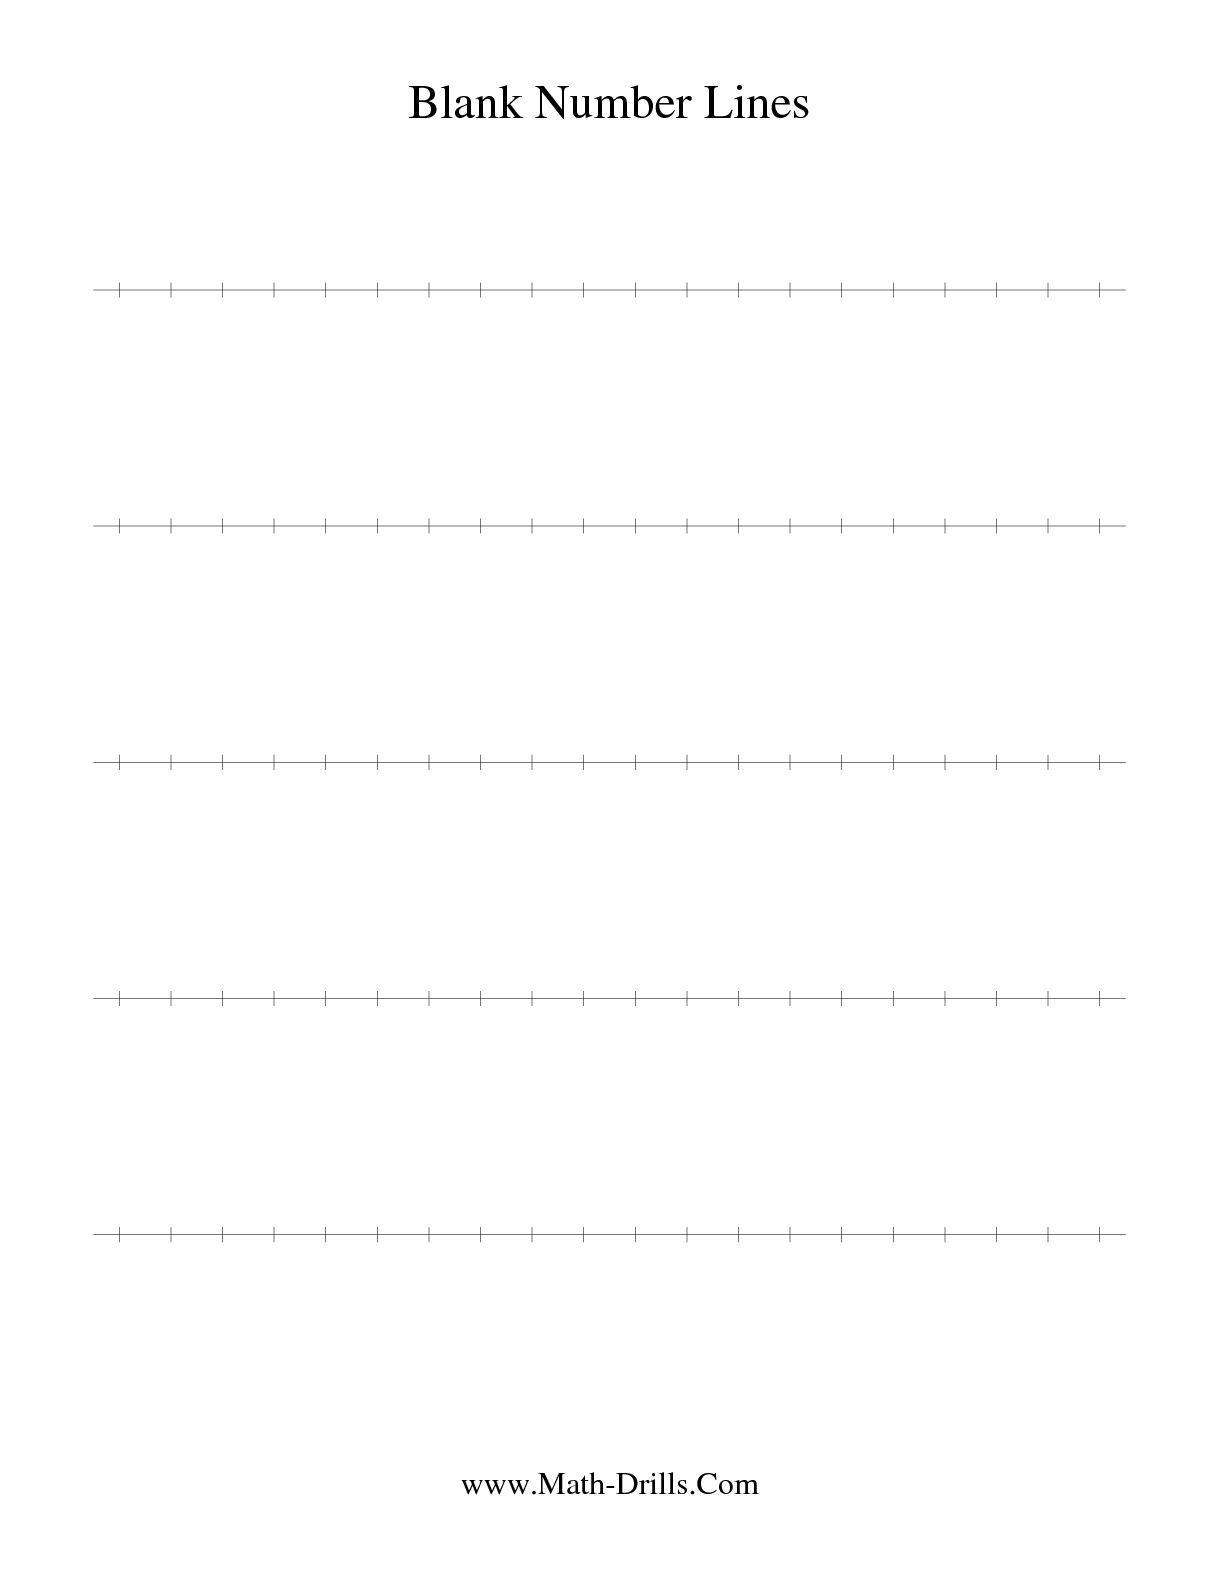 Worksheets Blank Math Worksheets the blank number line math worksheet from sense page at drills